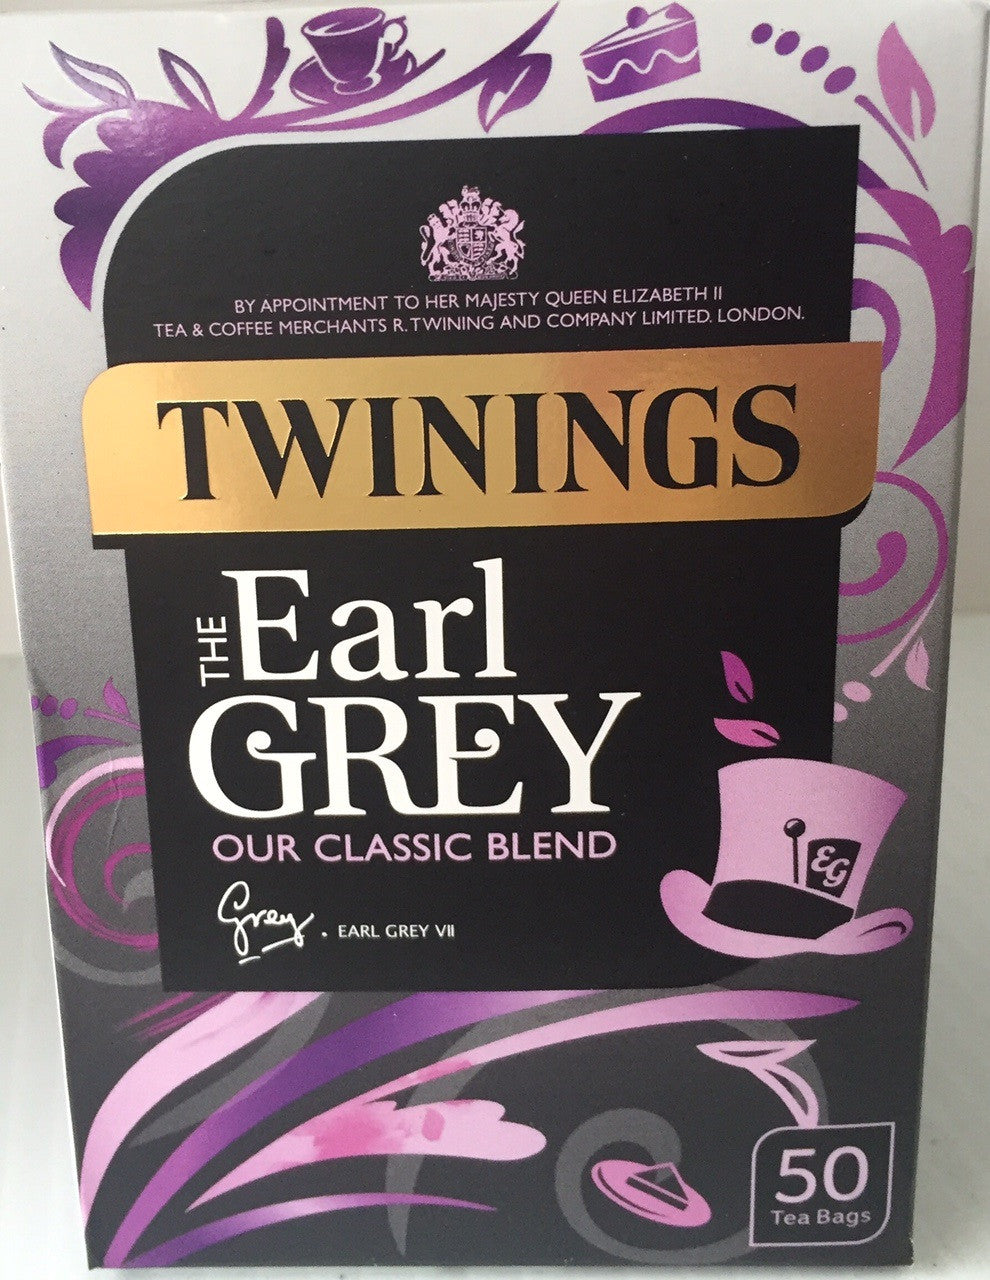 Twinings Earl Grey Teabags 50ct